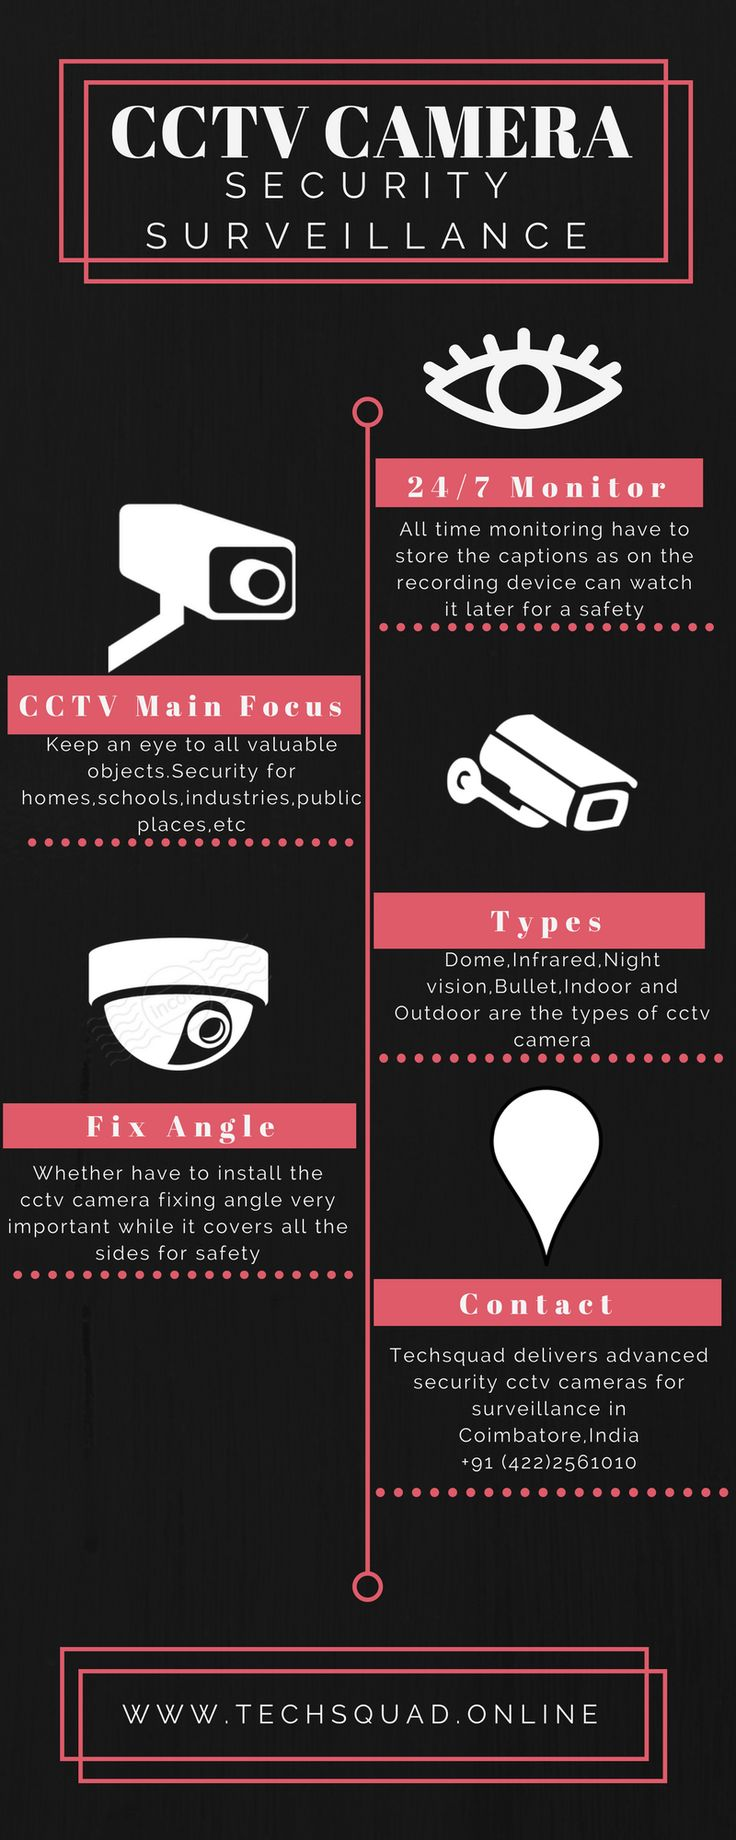 Techsquad delivers the advanced and highly secured CCTV Camera for homes, schools, offices and industries. It consists of high-resolution cameras with Noise reduction technology for better surveillance. Our goal is to provide the advanced level of security to all your domestic and industrial purposes. Whatever your need in Security Camera whether it be for your home, for schools or offices we deliver it with a high-end security system that matches all your needs in assuring safety to your…